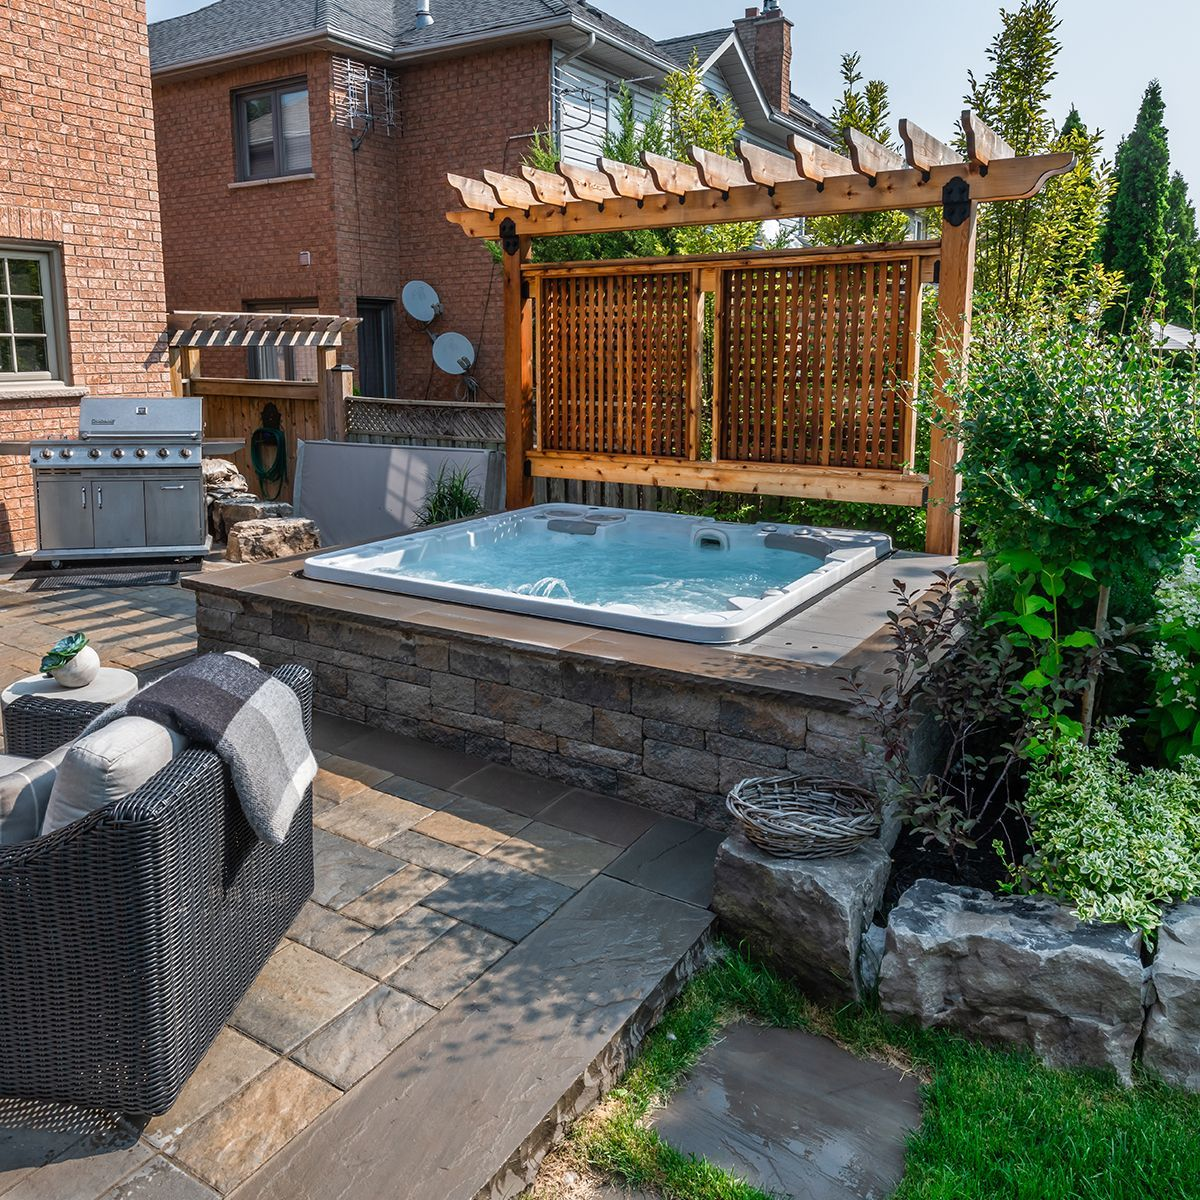 Inspiring Hot Tub Patio Design Ideas For Your Outdoor Decor 25